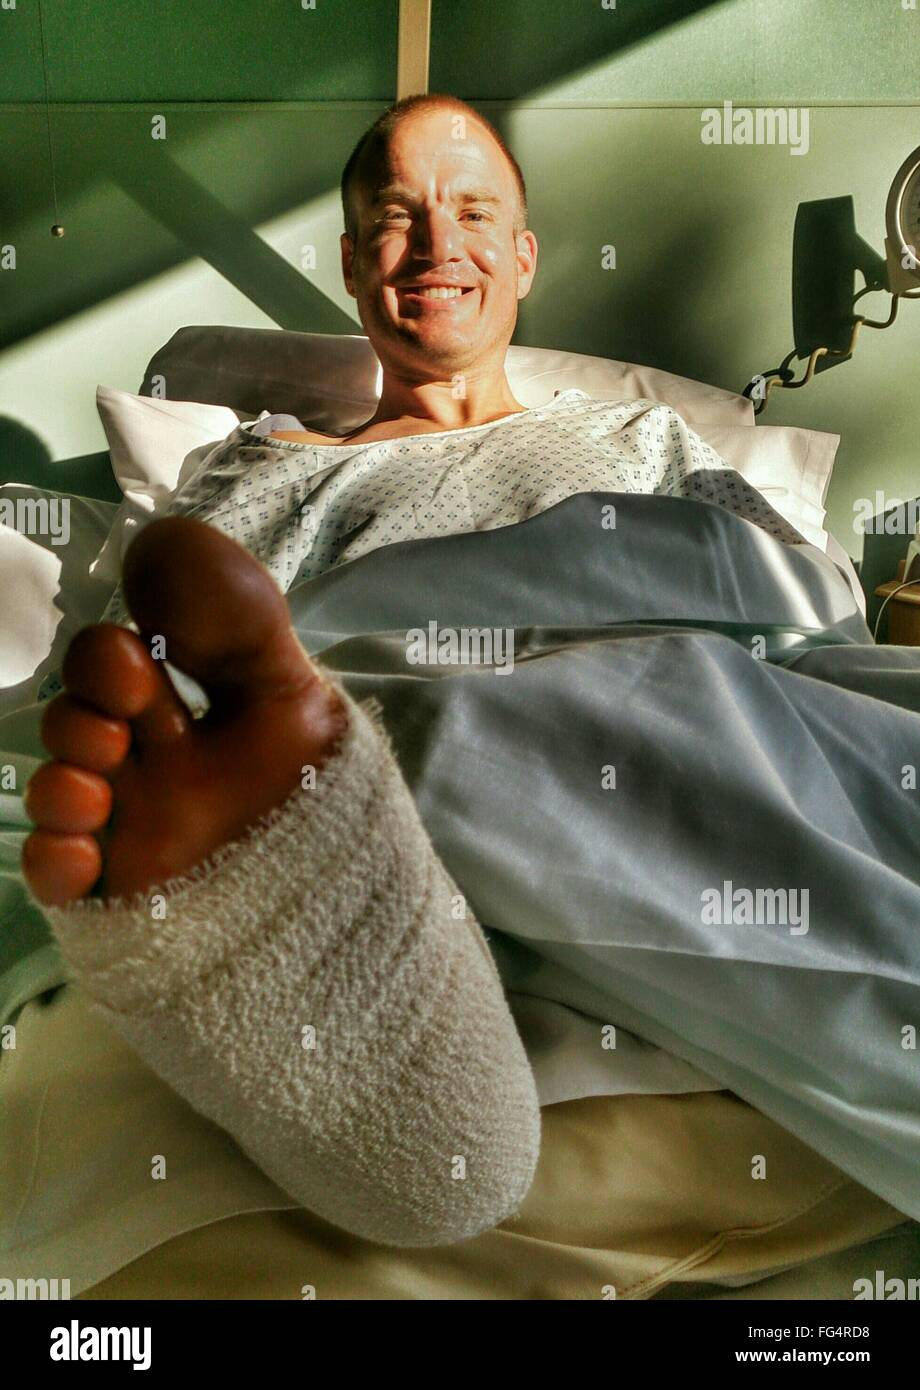 Portrait Of Happy Mid Adult Man With Broken Leg Recovering In Hospital Bed - Stock Image